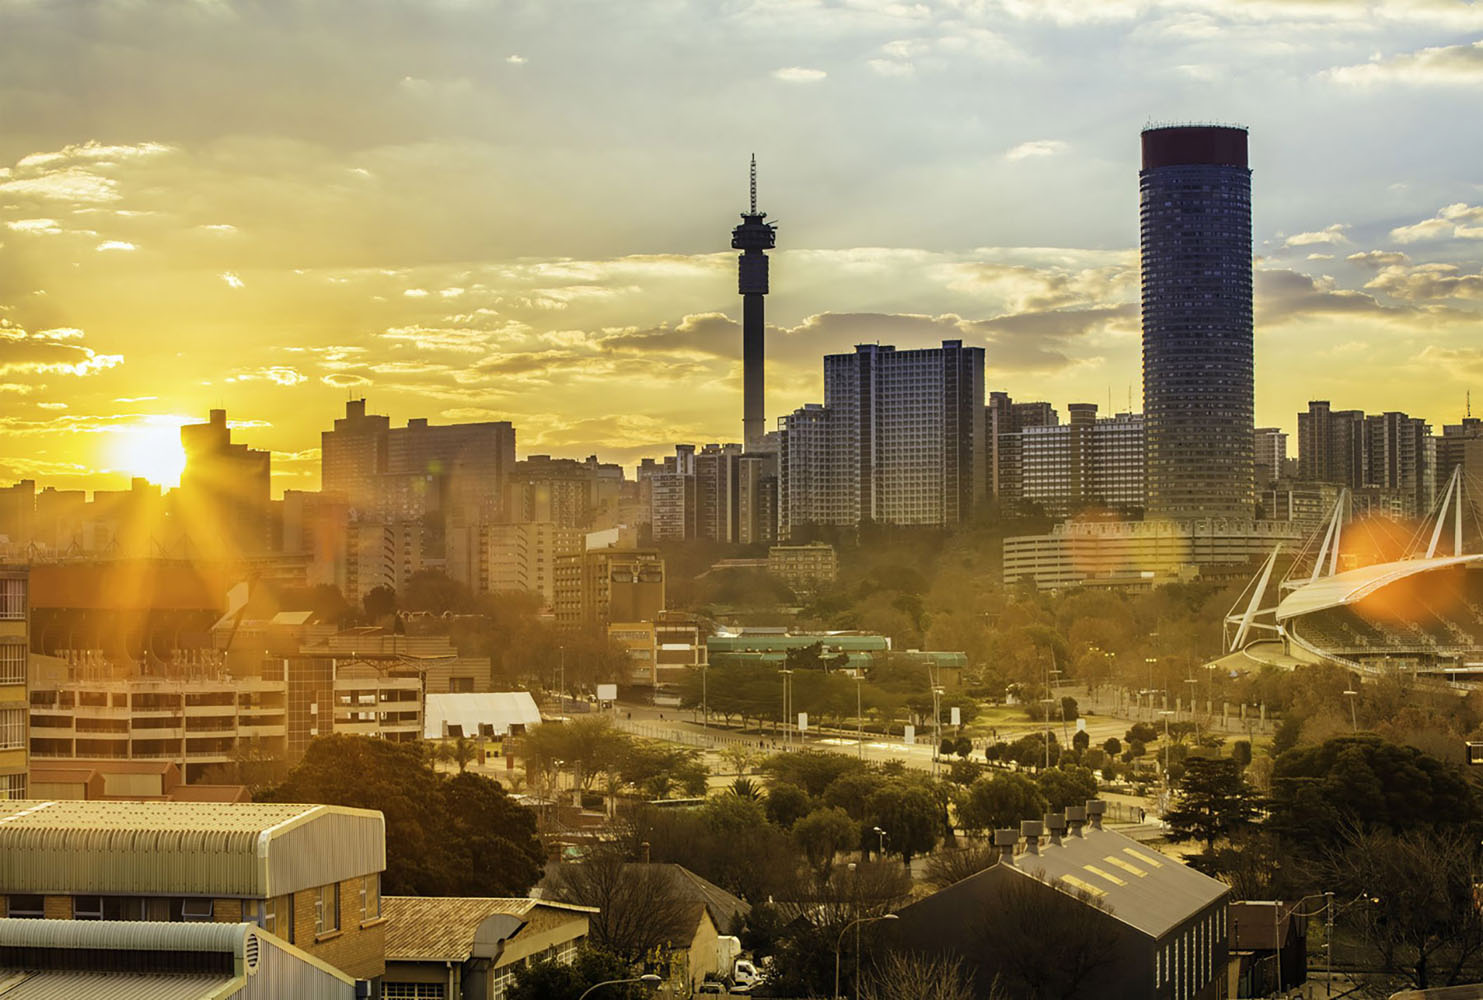 The city skyline of Johannesburg, South Africa in the early evening